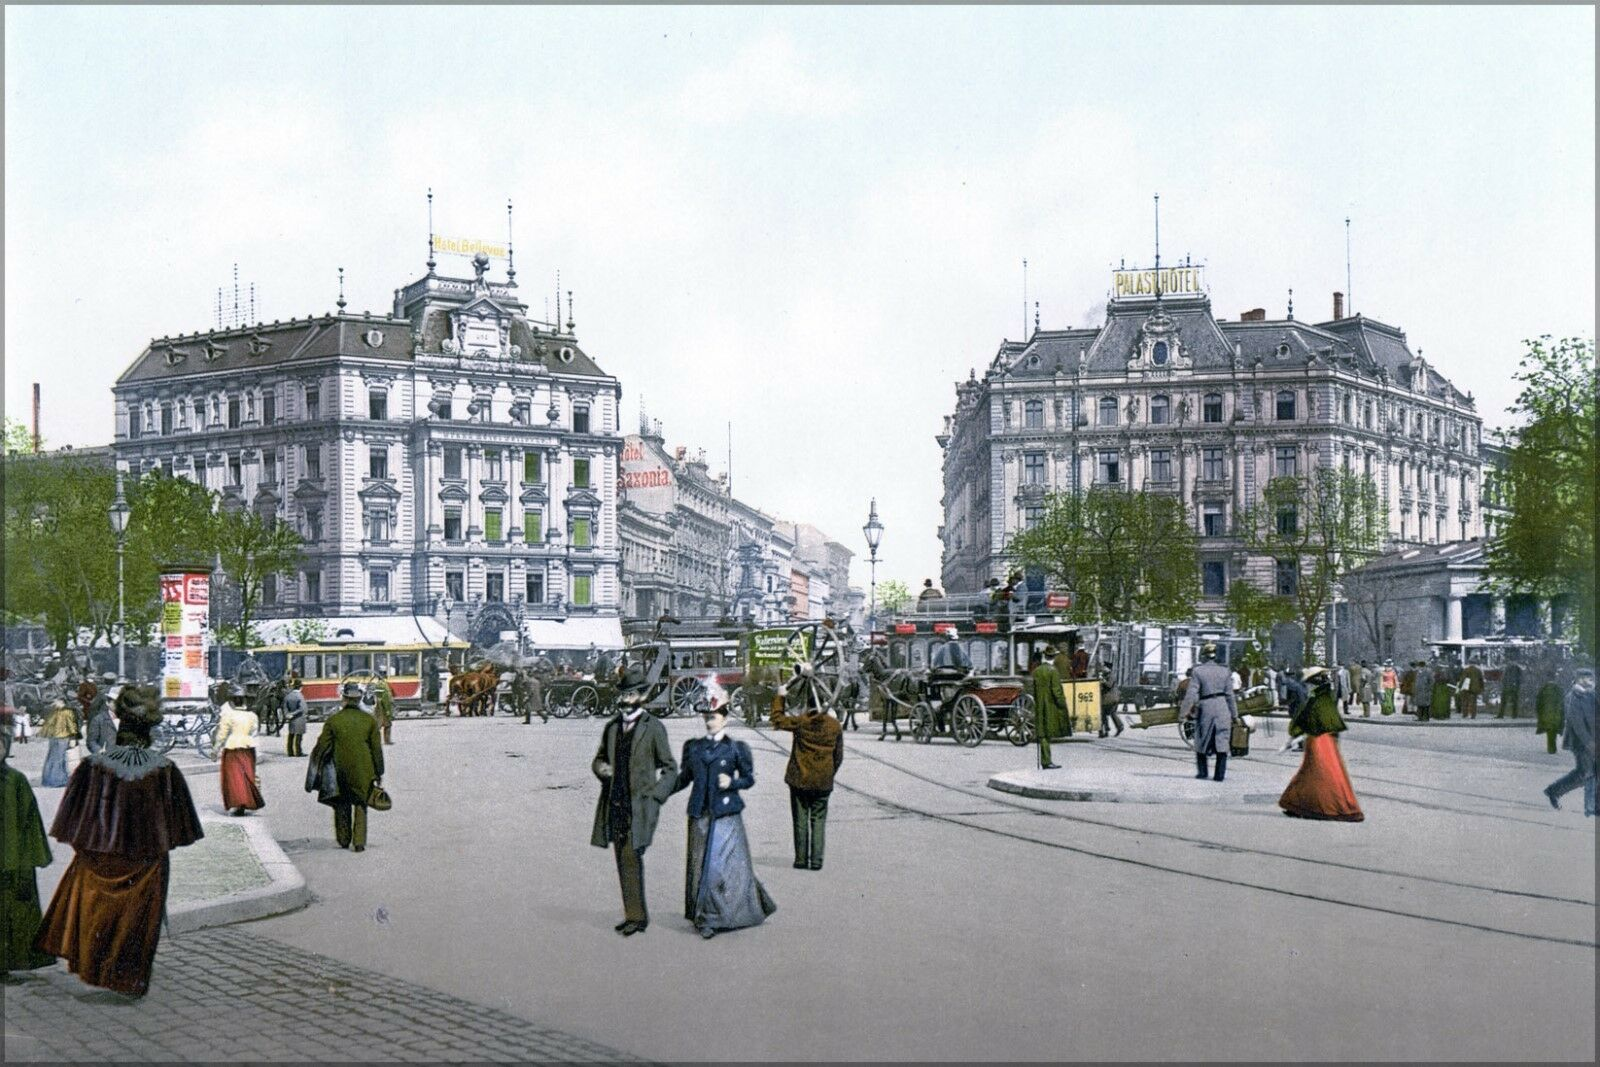 Poster, Many Größes; Berlin - Potsdam Square Potsdamer Platz Around 1900